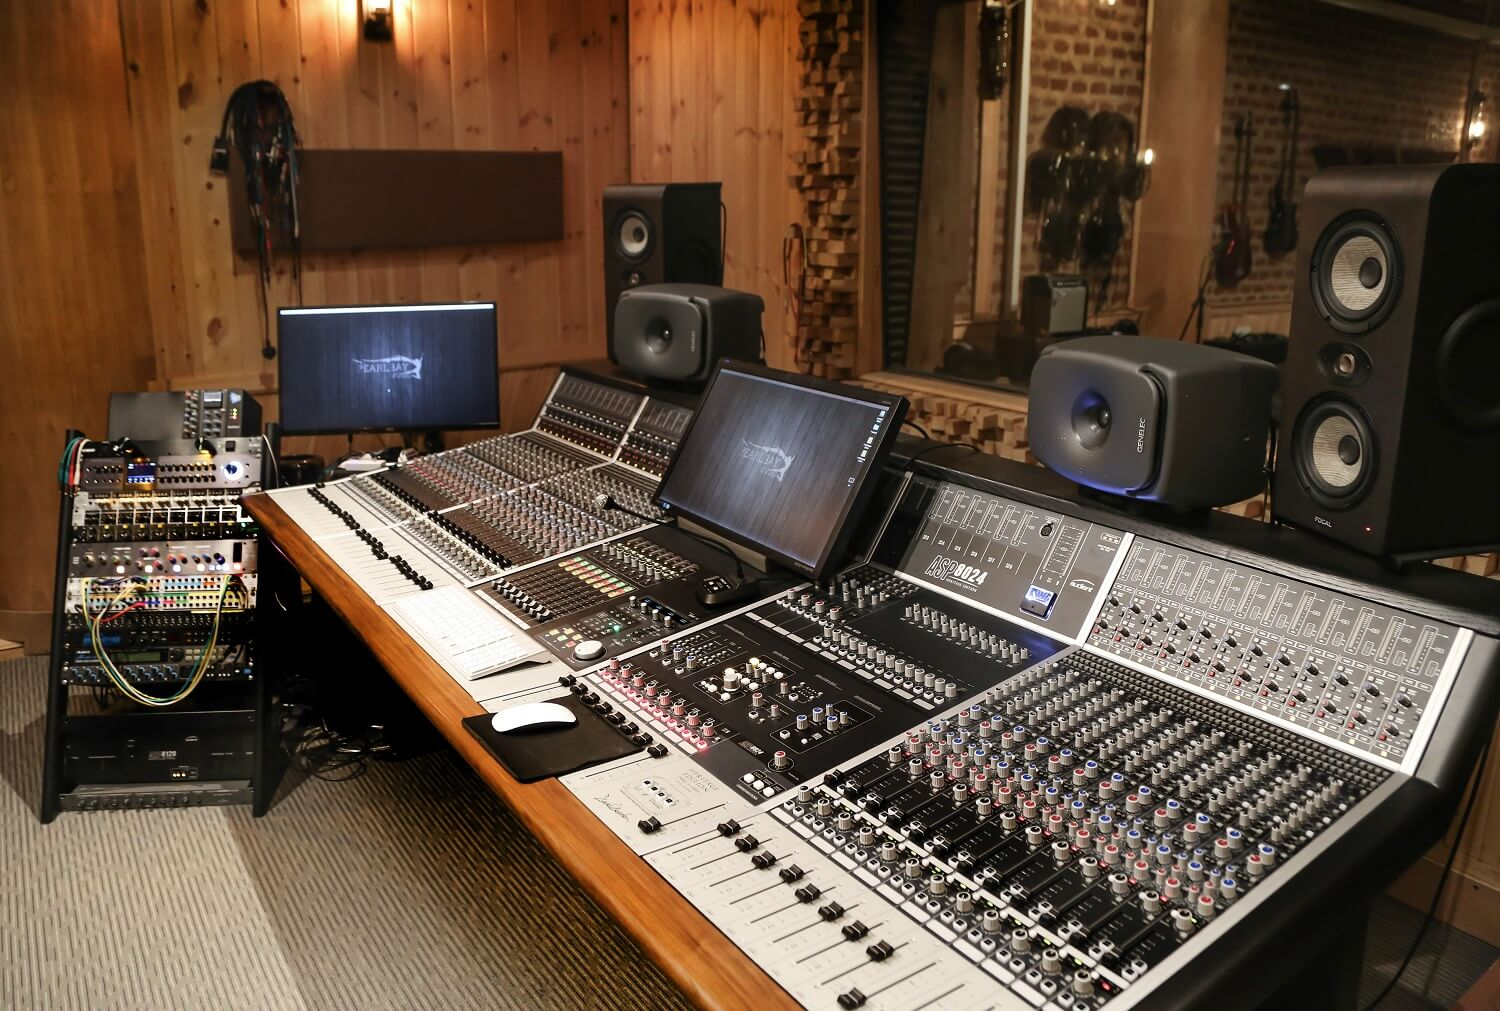 Mixing console in studio complex